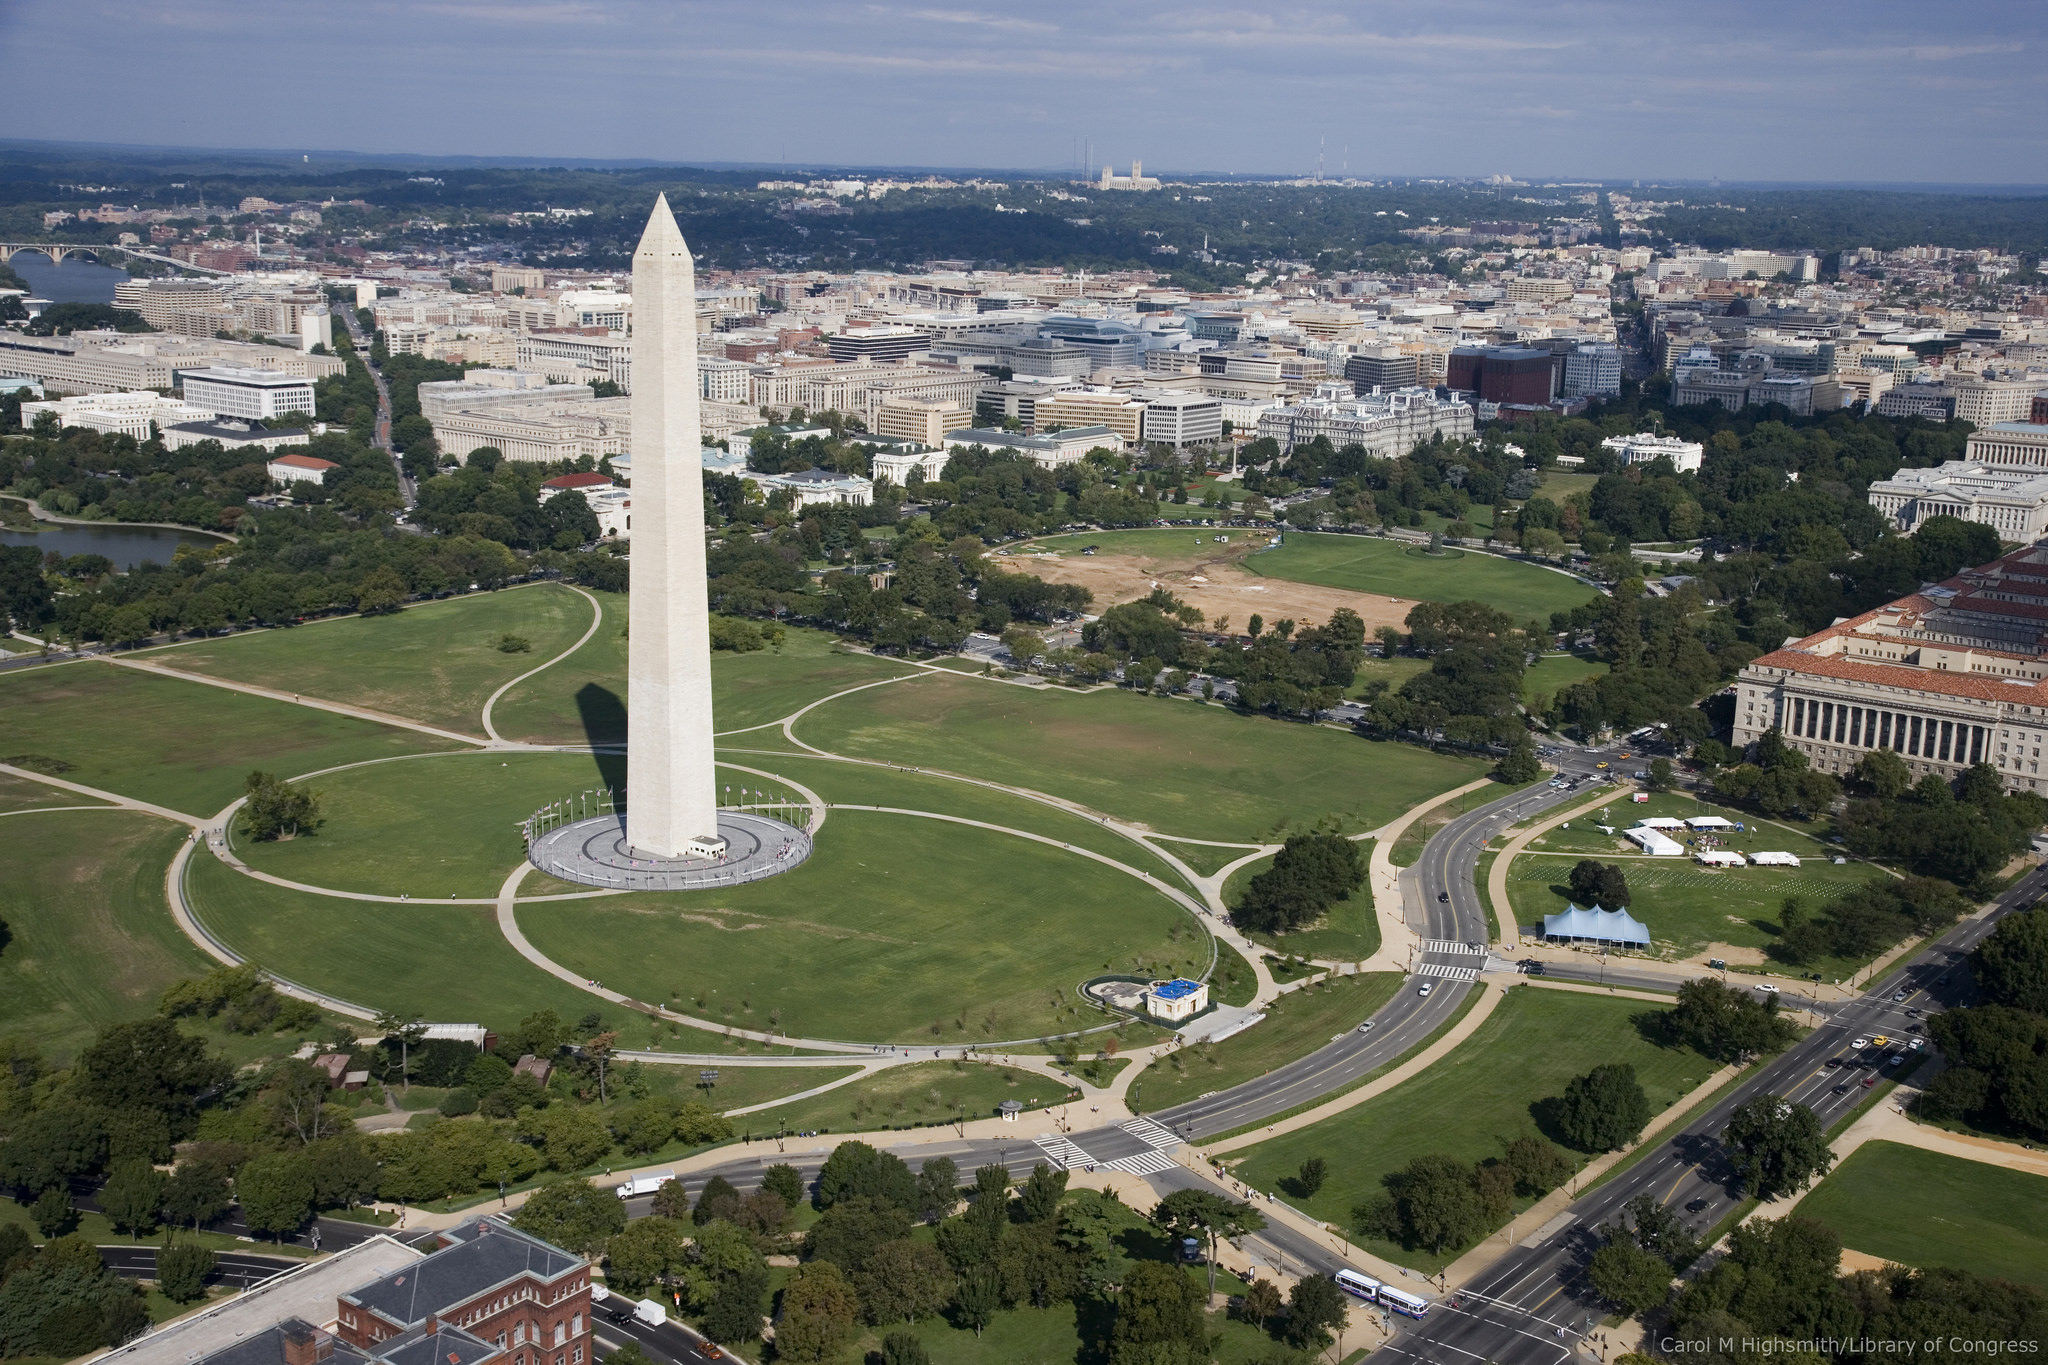 Washington Monument. Source: IIP Photo Archive on Flickr